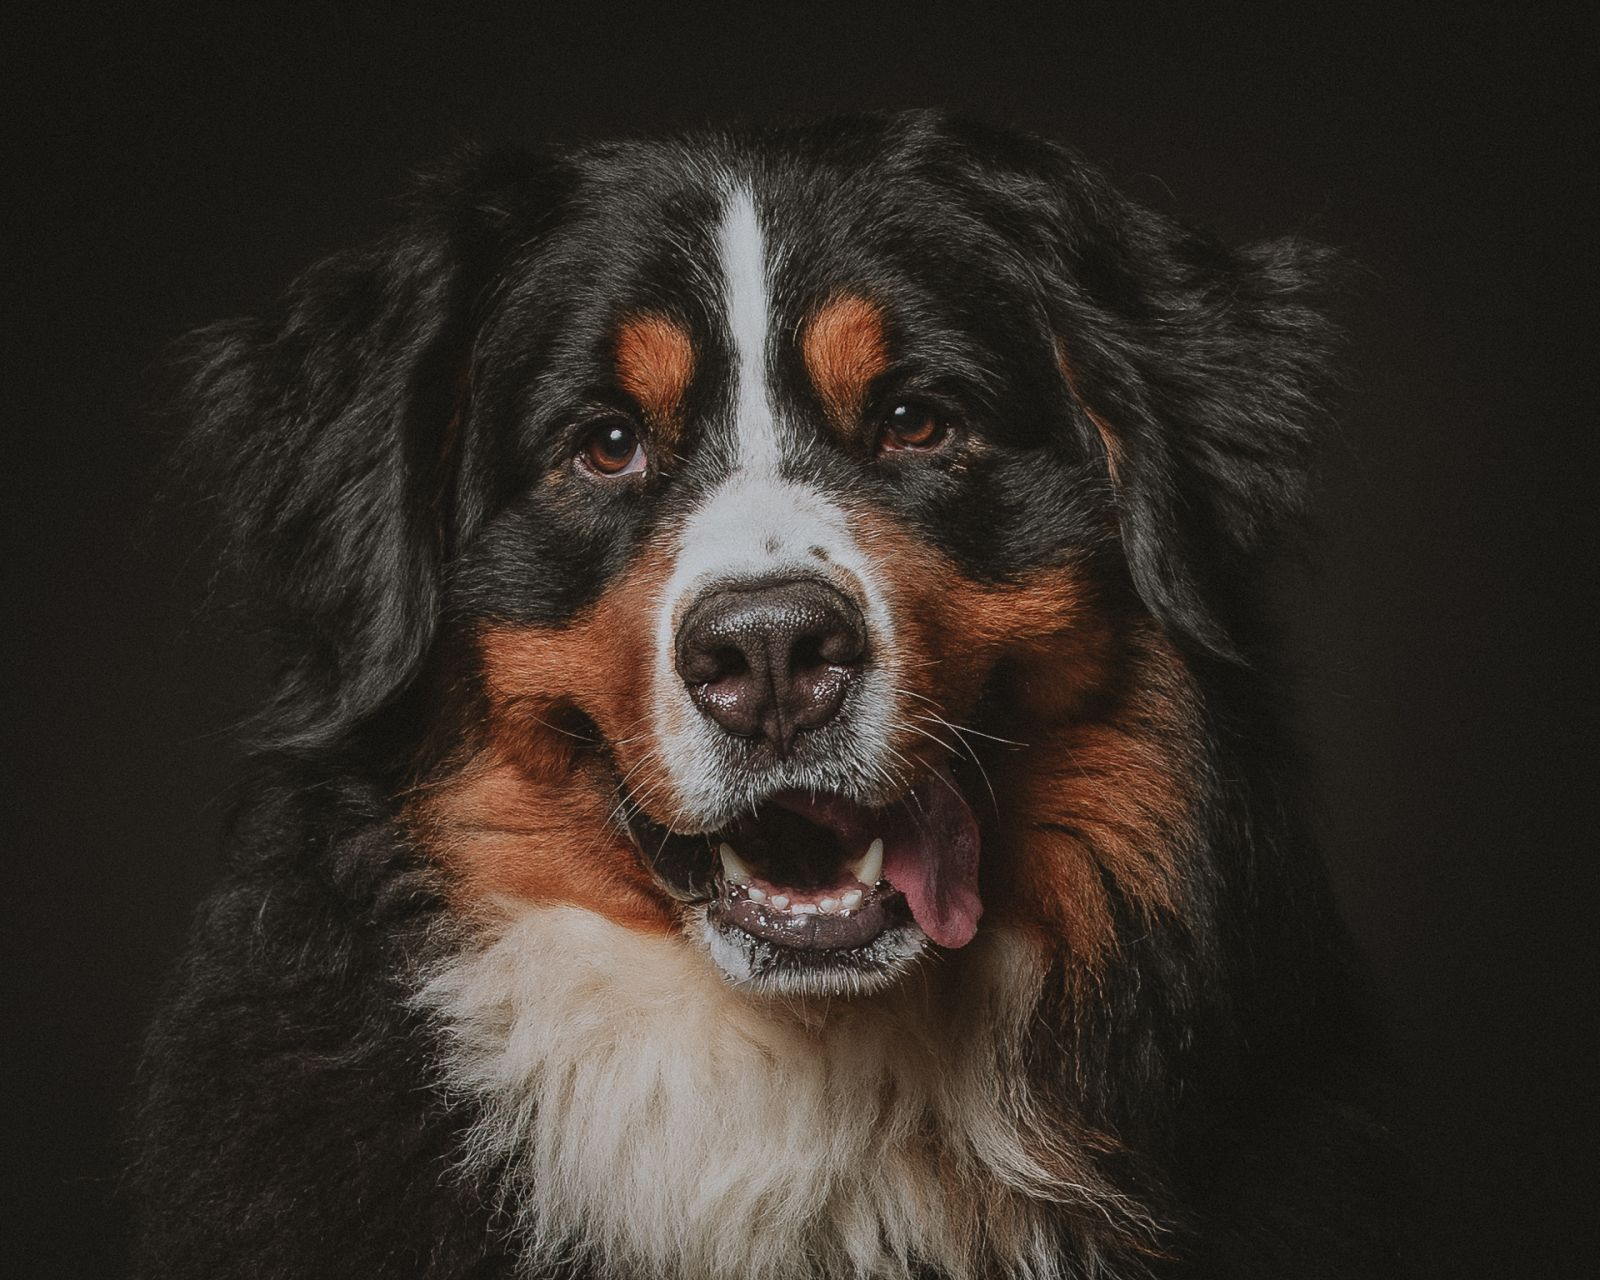 Dog headshot of Bernese mountain dog on a dark background